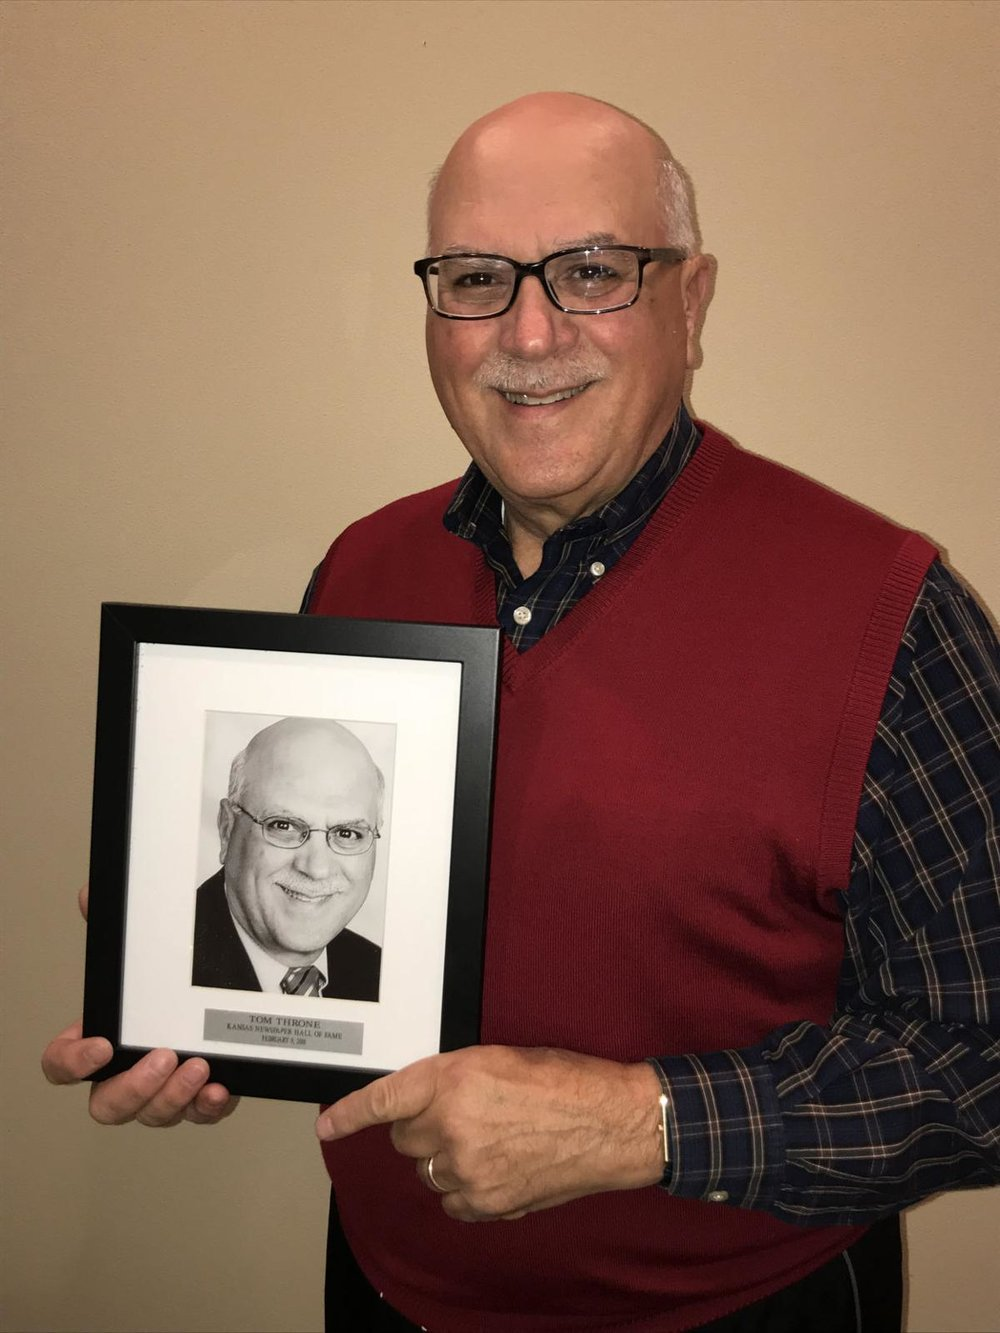 Tom Throne  (j'72, above) was inducted into the Kansas Newspaper Hall of Fame by the Kansas Press Association earlier this year. Throne has held leadership roles at six different newspapers in three states. He and his wife, Pam, are retired and live in Bentonville, Arkansas.